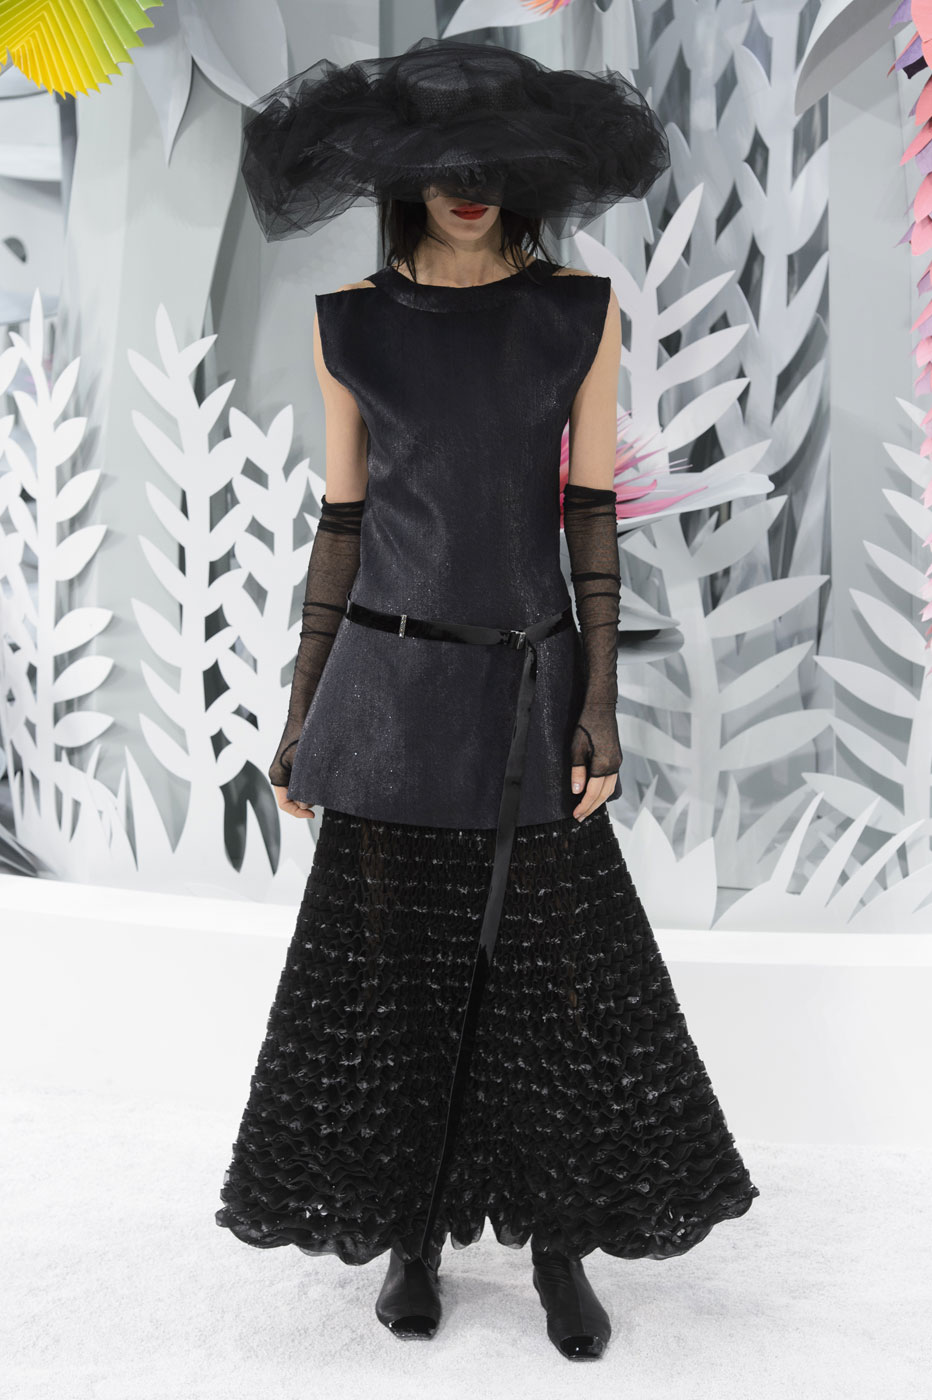 Chanel-fashion-runway-show-haute-couture-paris-spring-summer-2015-the-impression-113